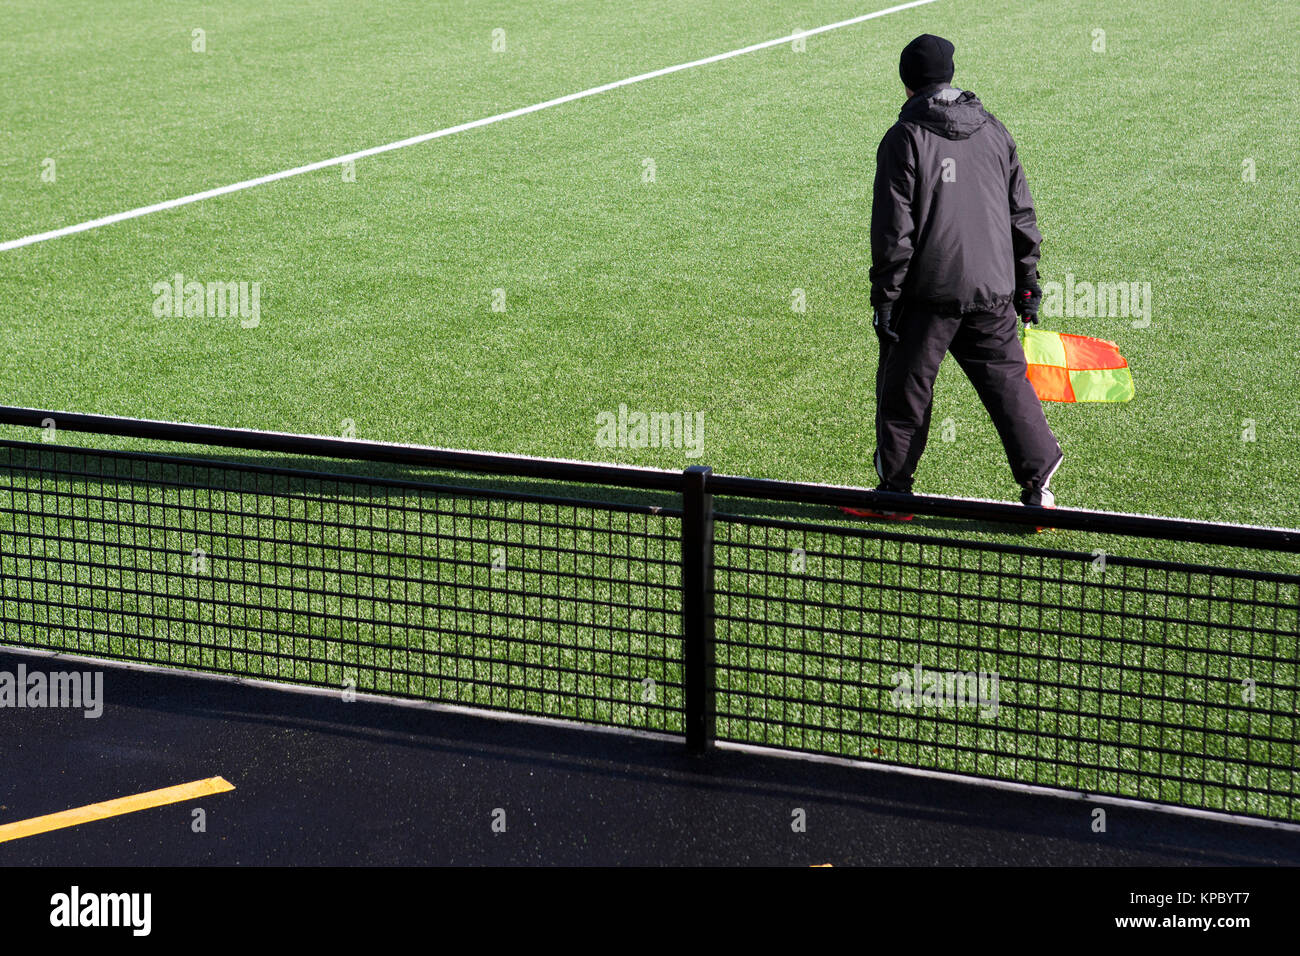 A match official, the linesman, walking along the edge of a new artifical grass pitch carrying his flag. - Stock Image